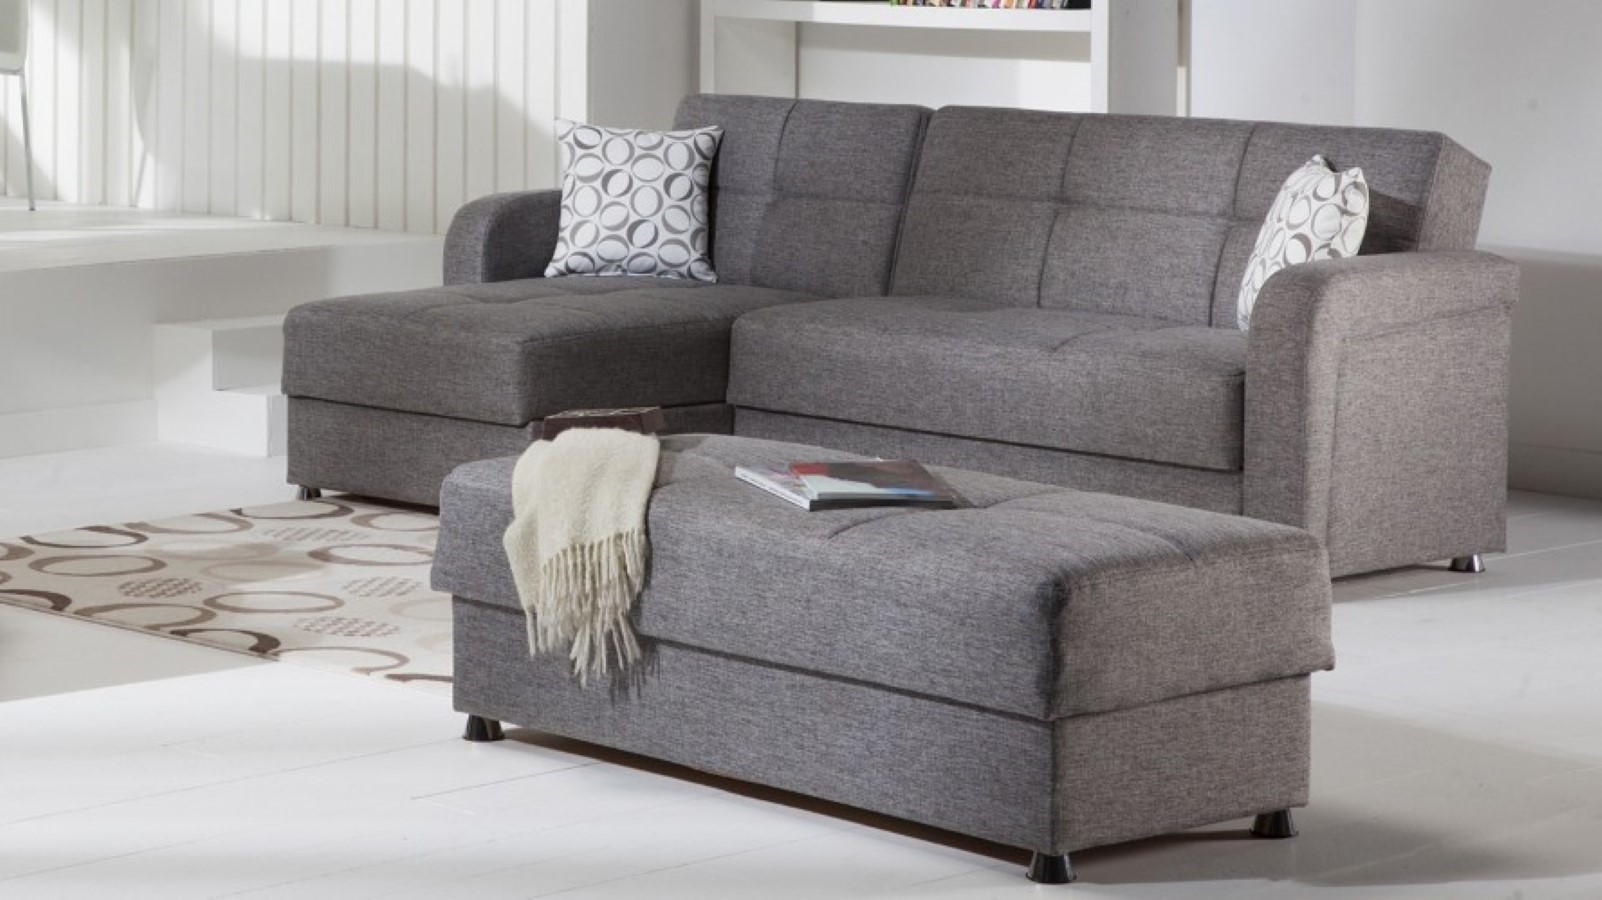 Gray sectional sofa with chaise luxurious furniture for Chaise and ottoman